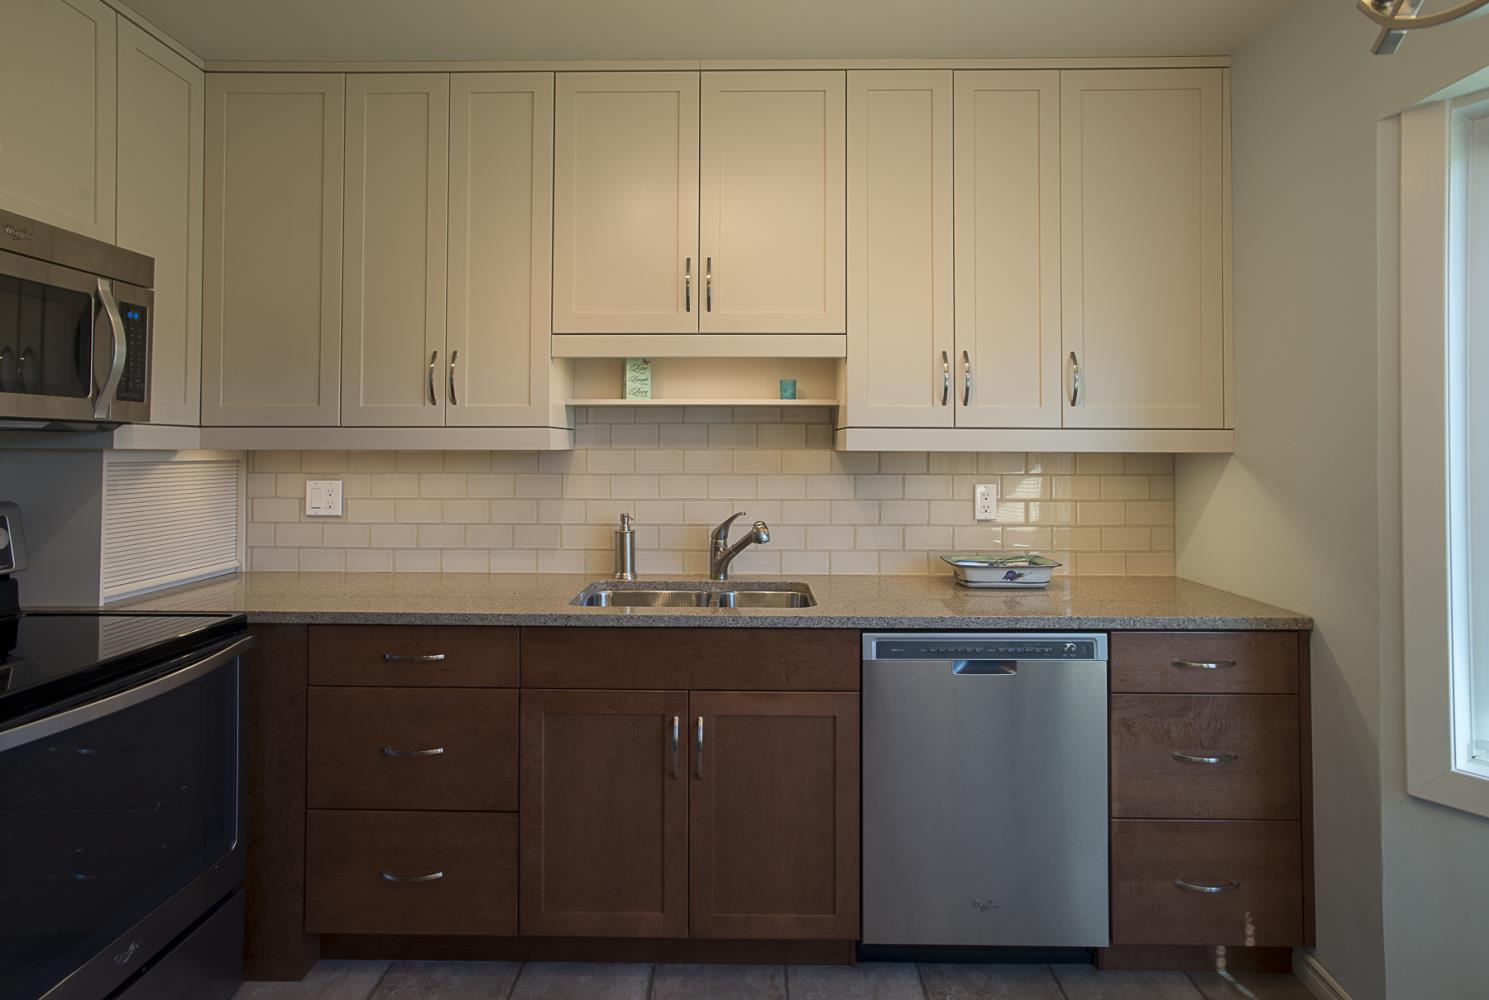 Kitchen Remodel Des Moines Style Cabinet Styles